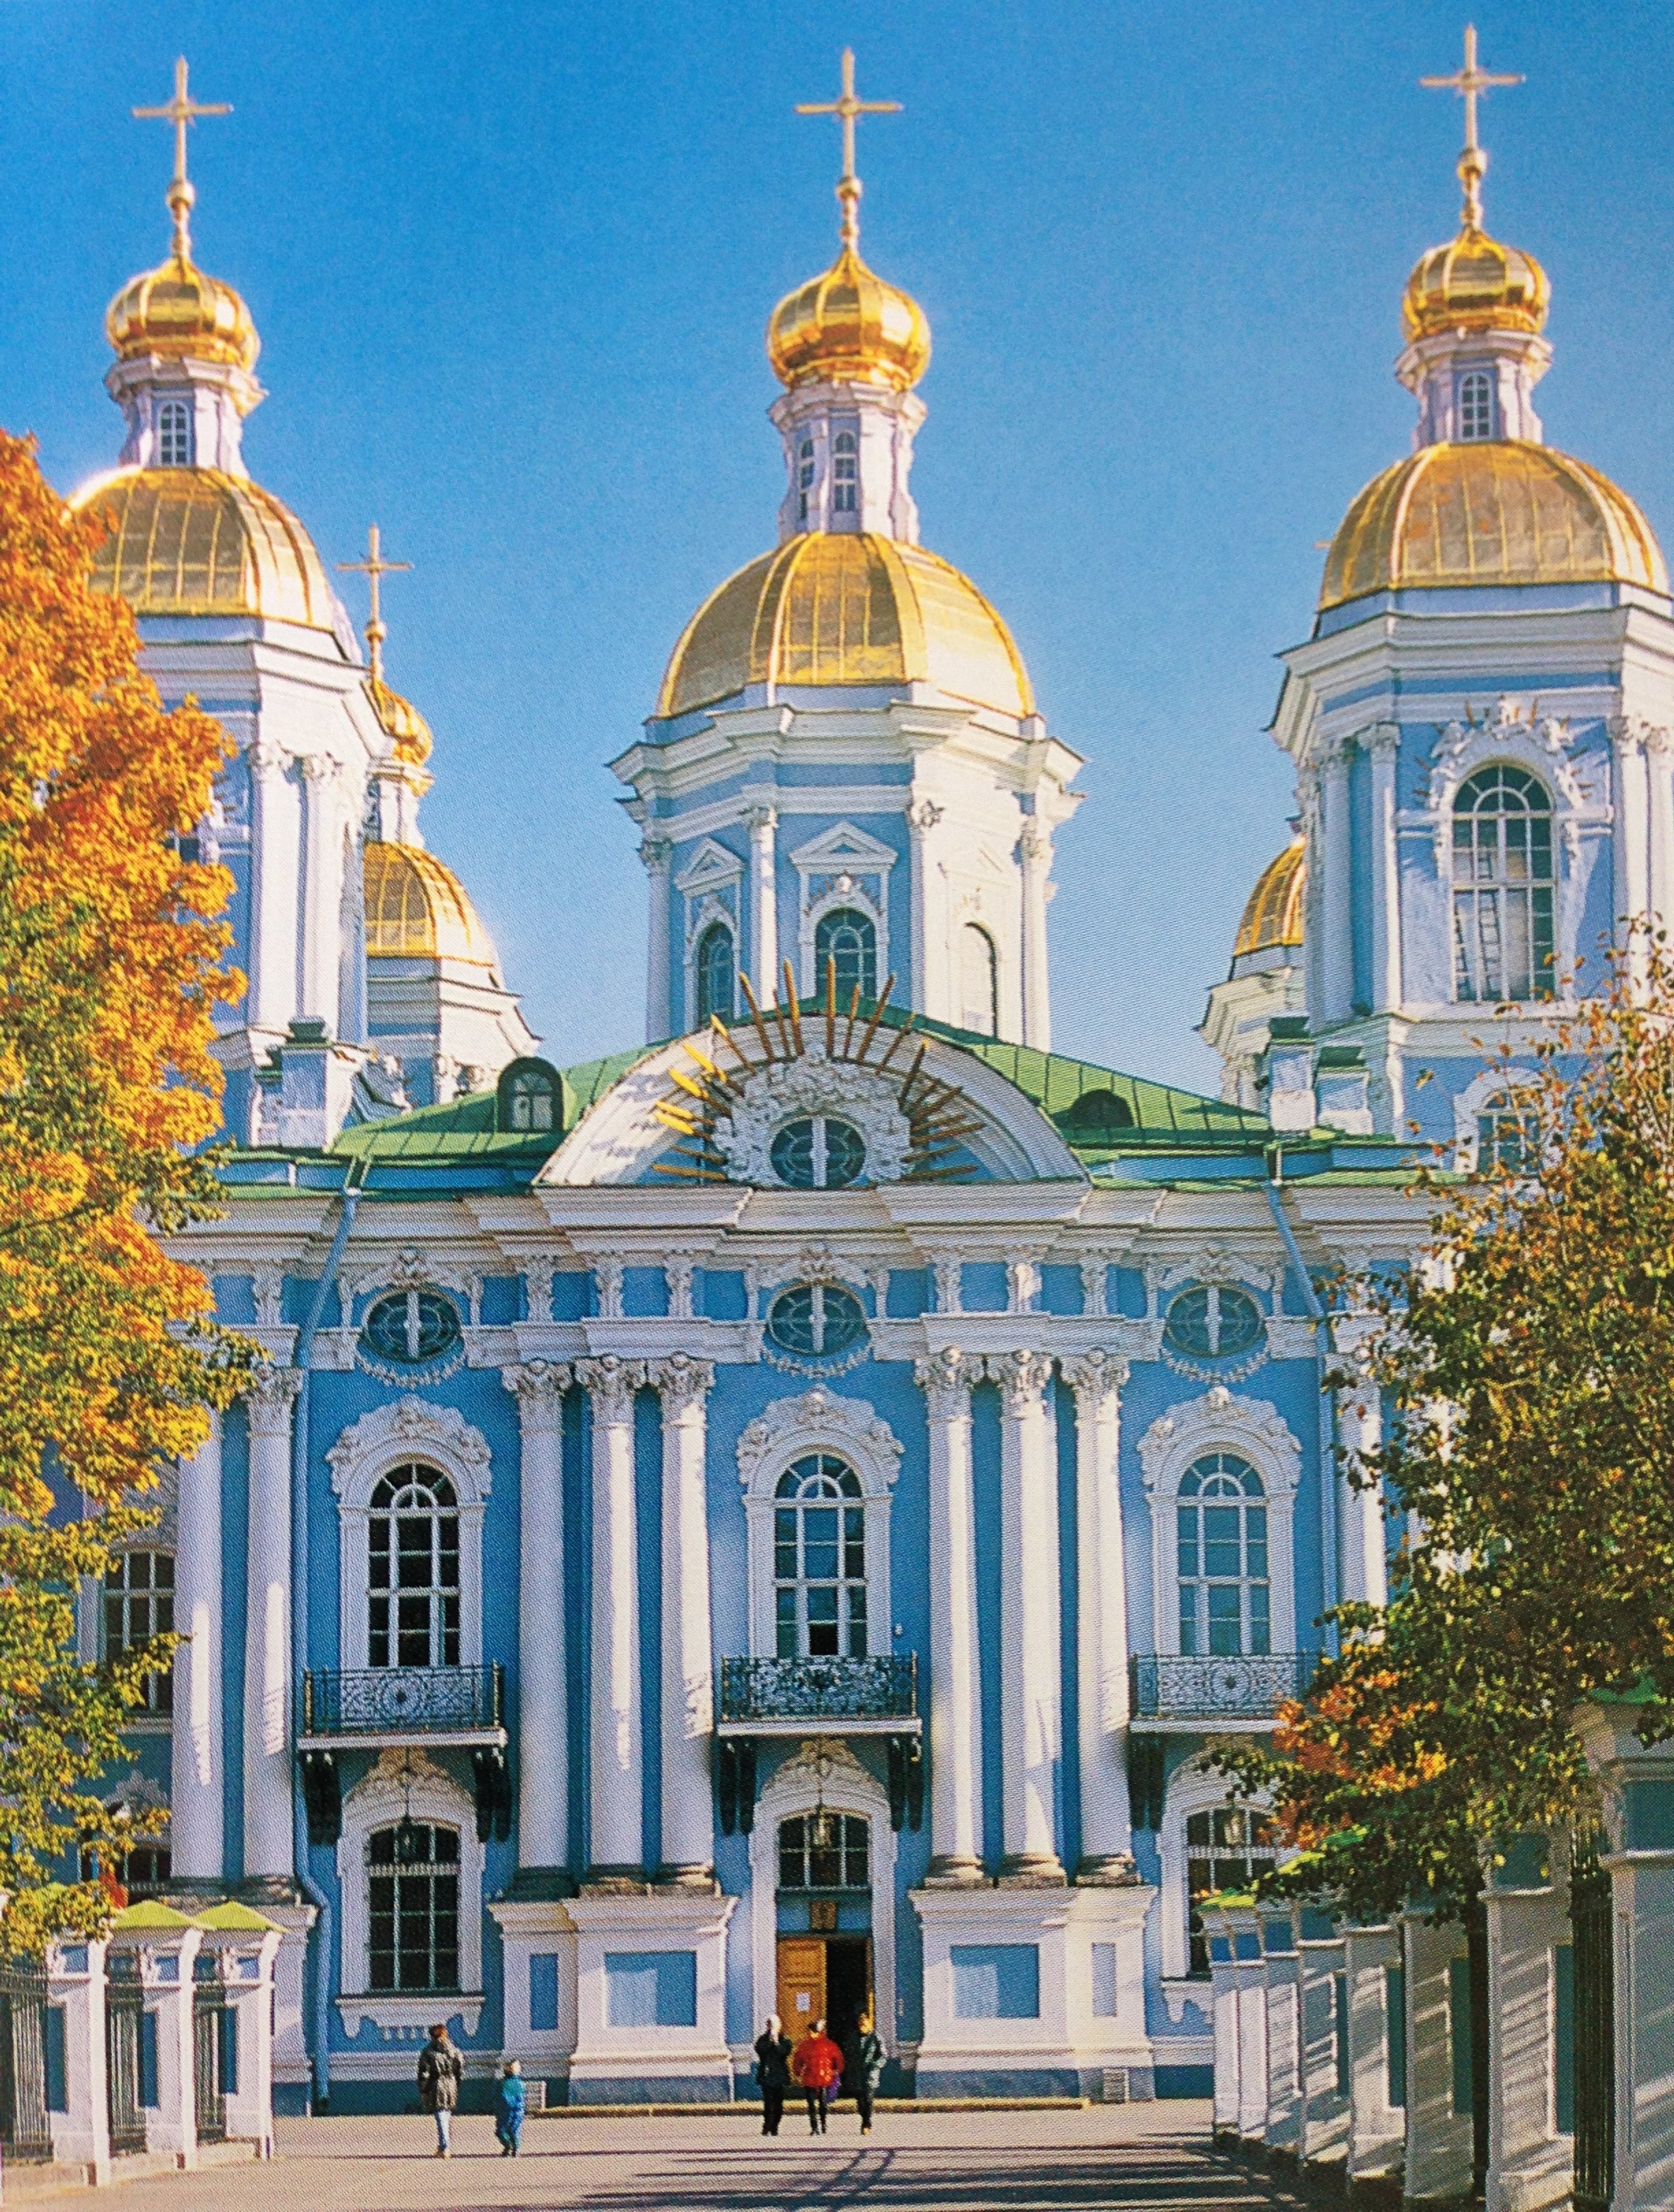 St Petersburg Nood: The St. Nicholas Cathedral